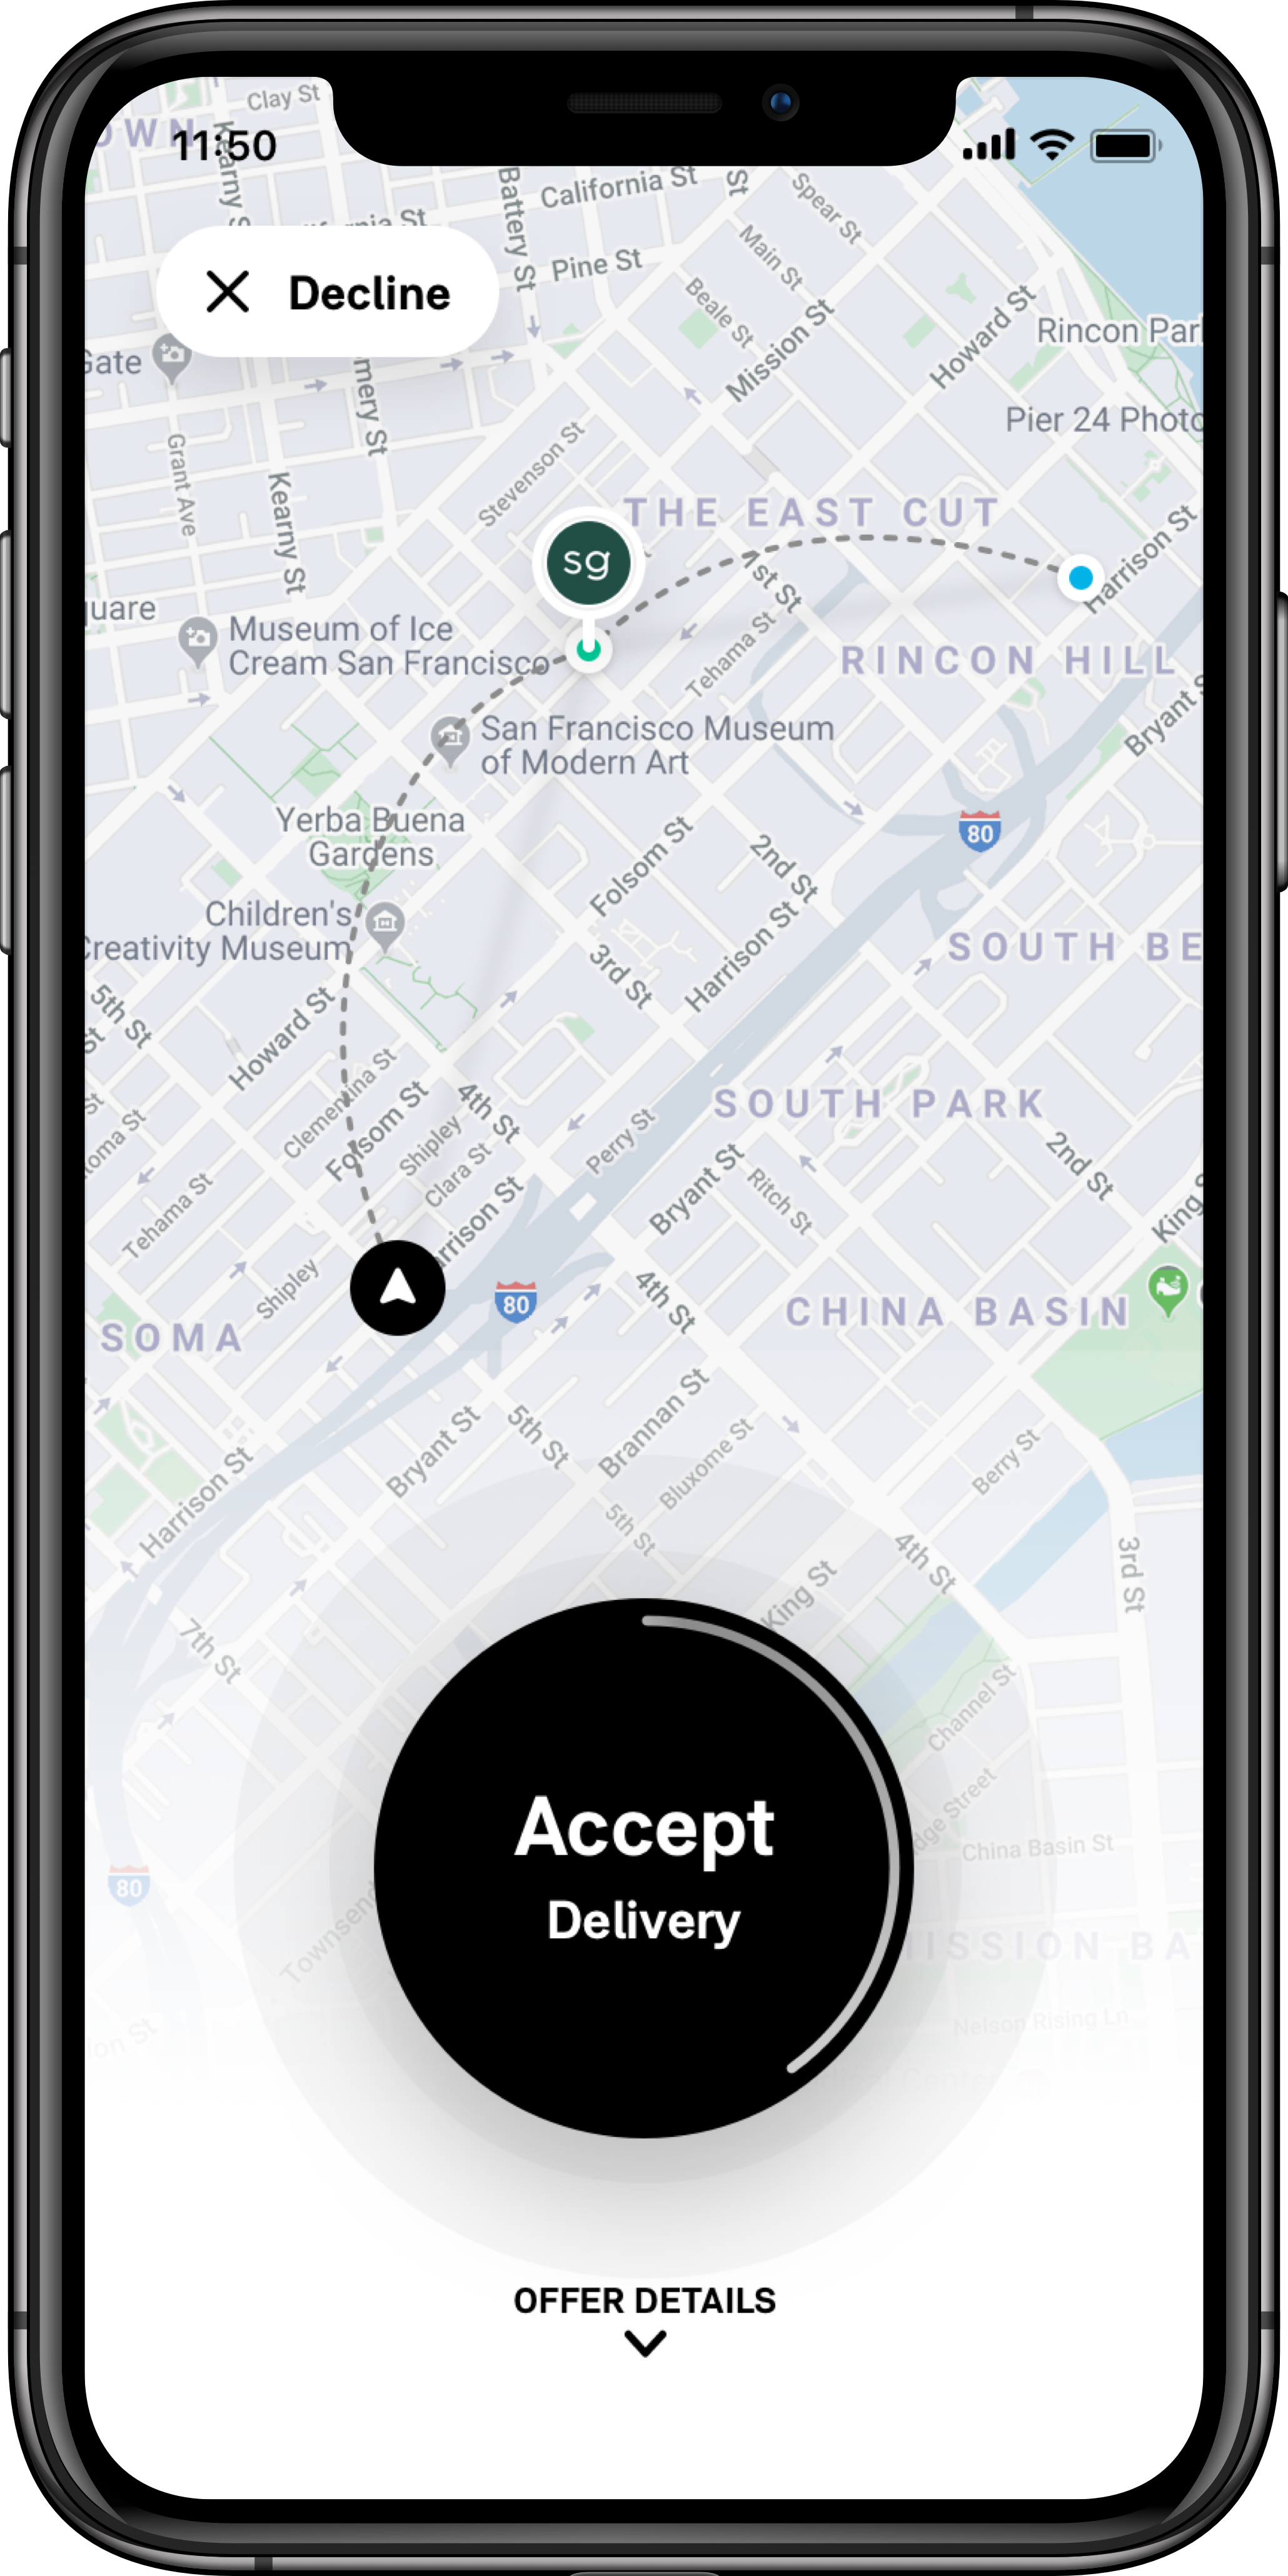 What if my customer wants to change their order? - Postmates